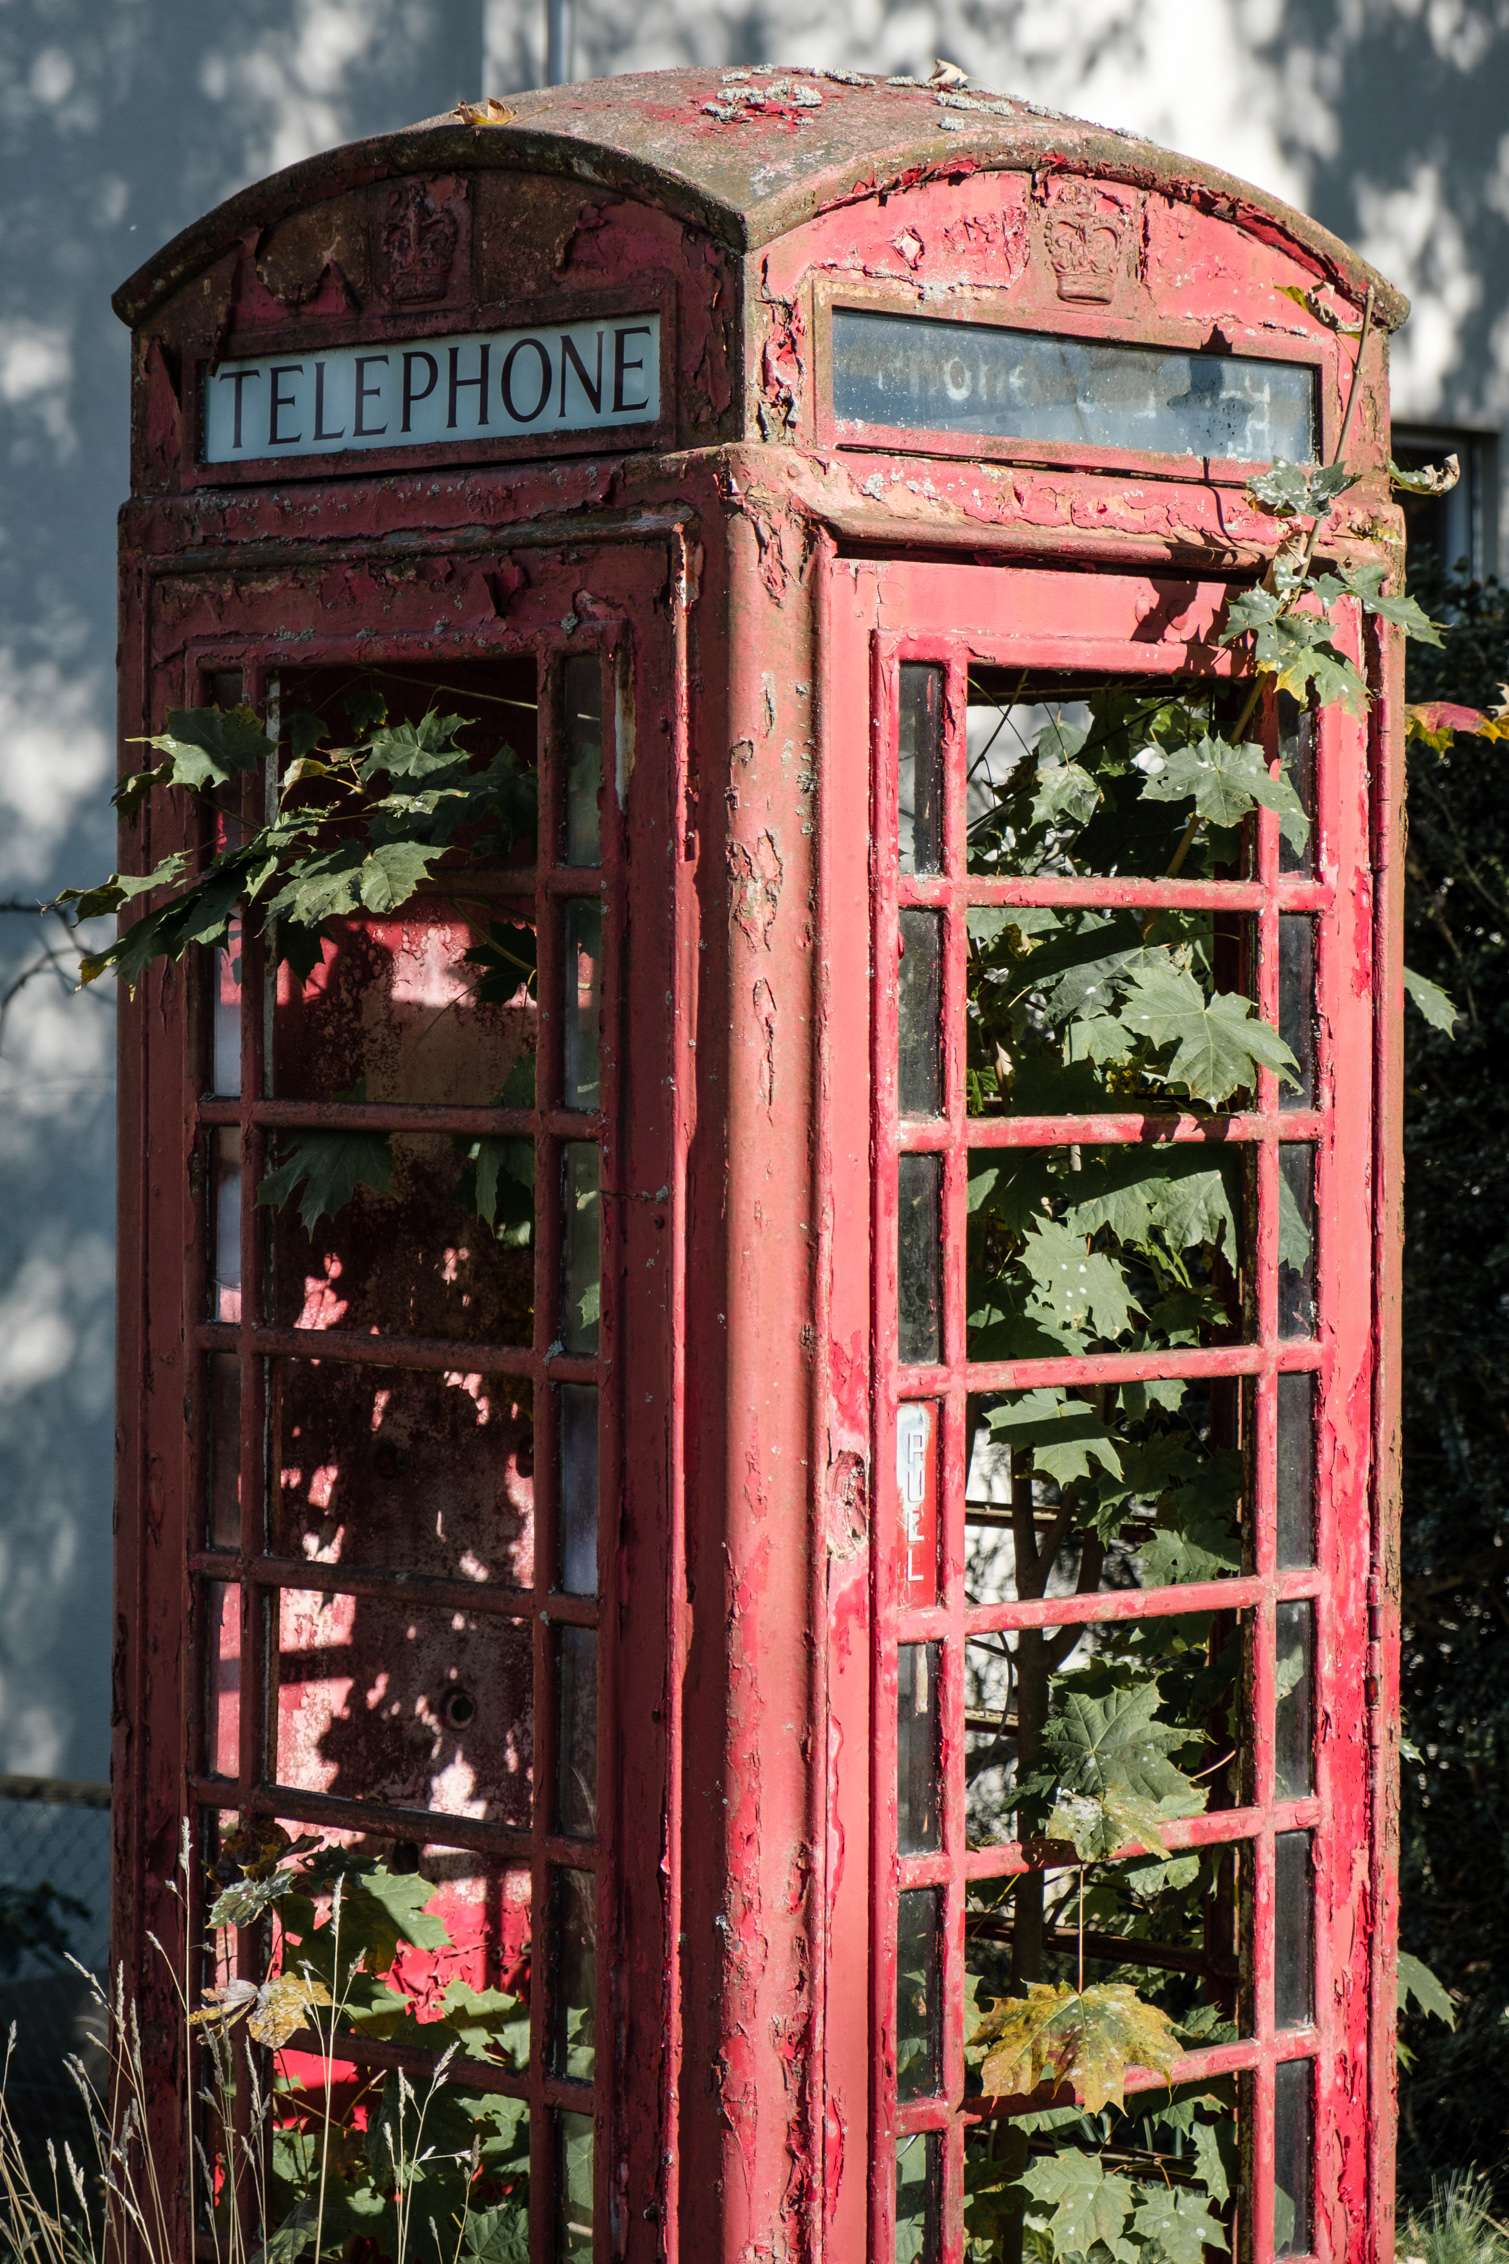 A decrepit old red British telephone box overgrown with plants